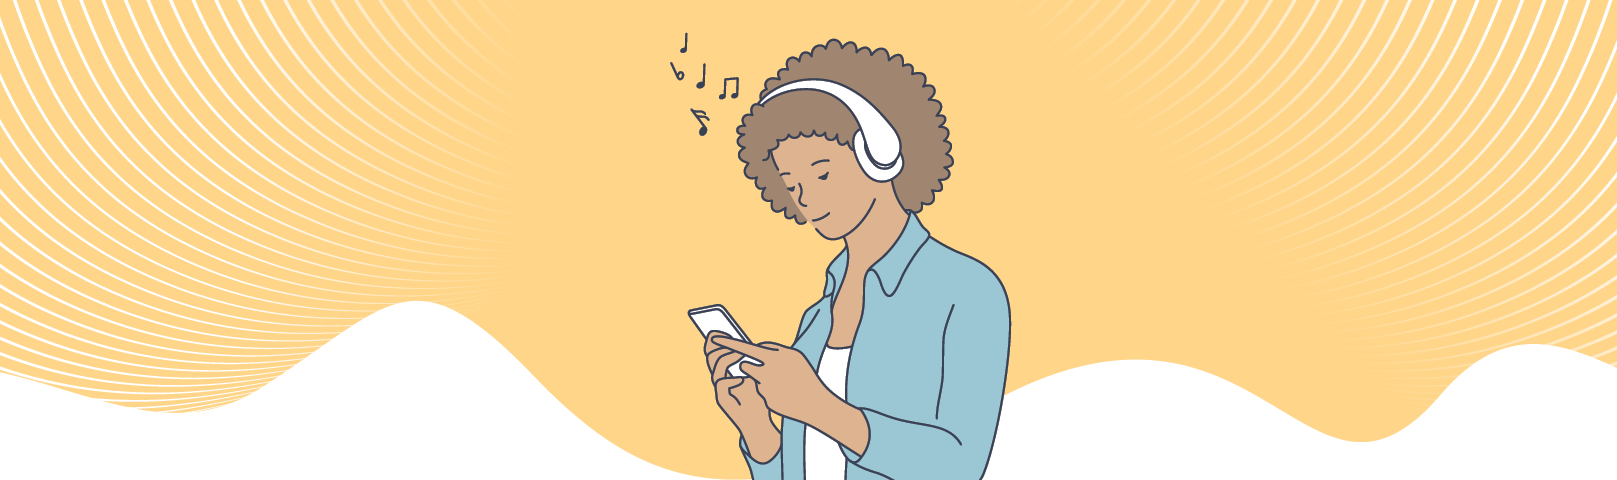 Illustration of young African American woman listening to music on her headphones while looking at her smartphone